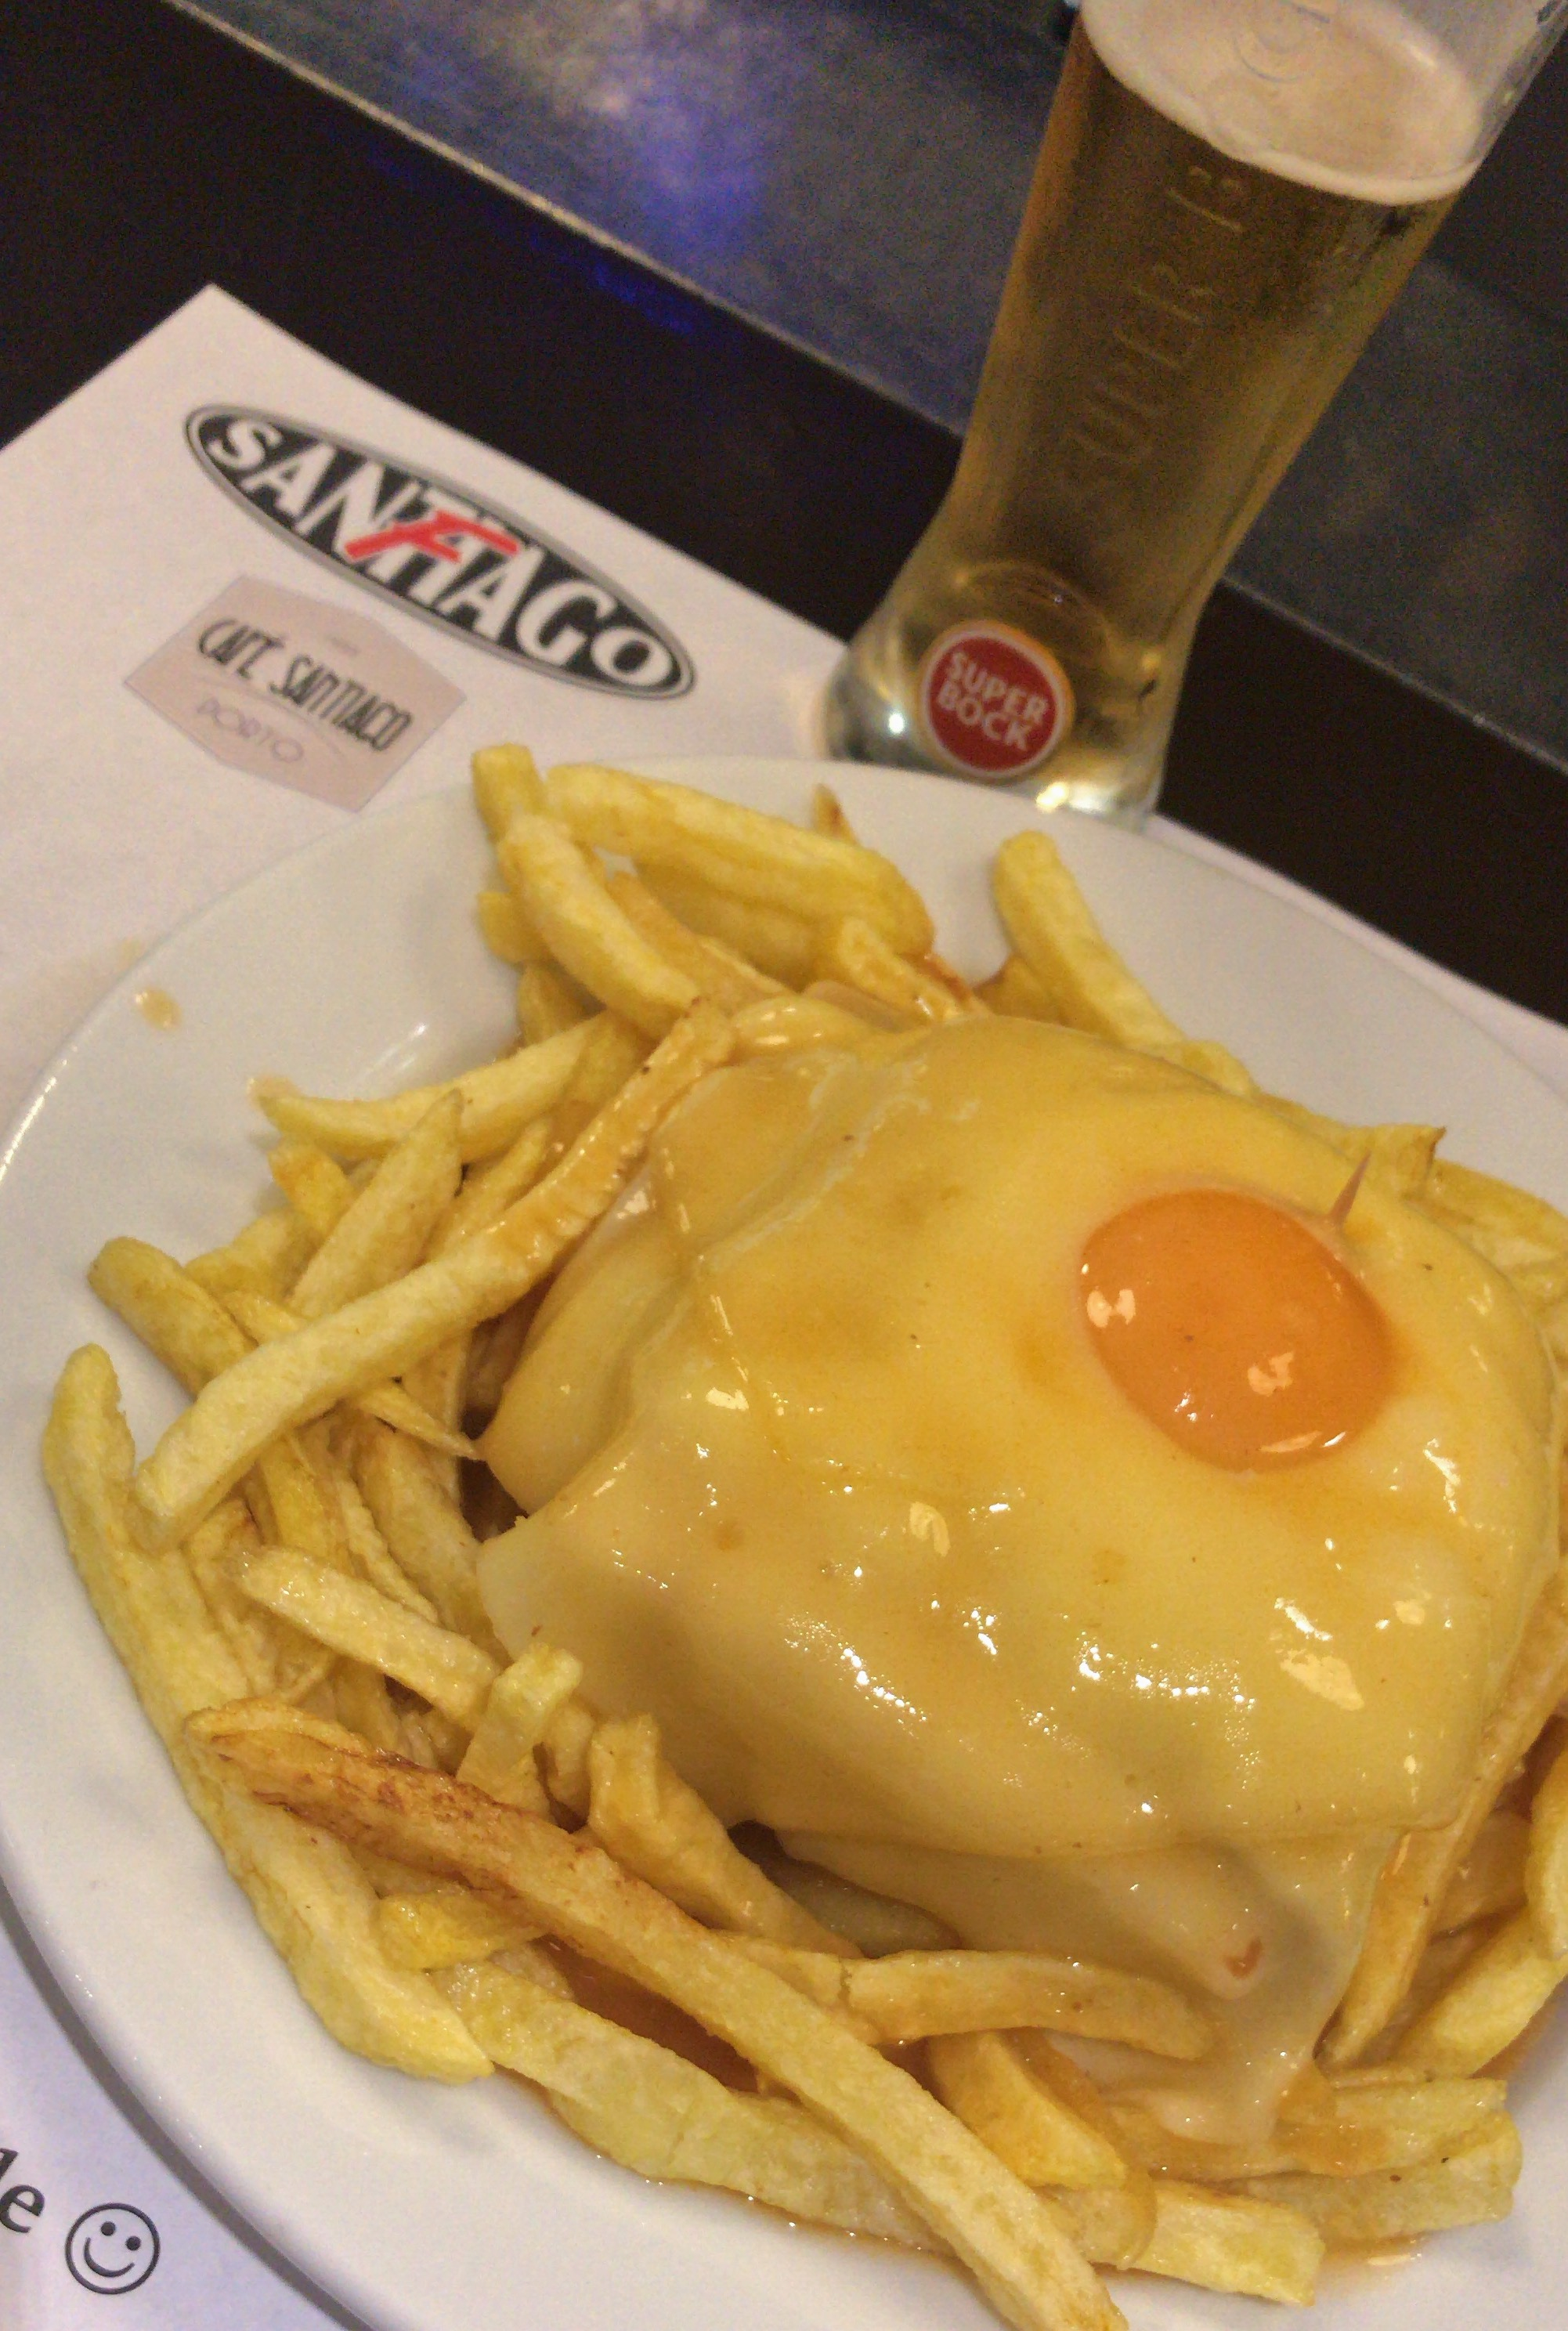 A francesinha with egg from the popular Cafe Santiago.